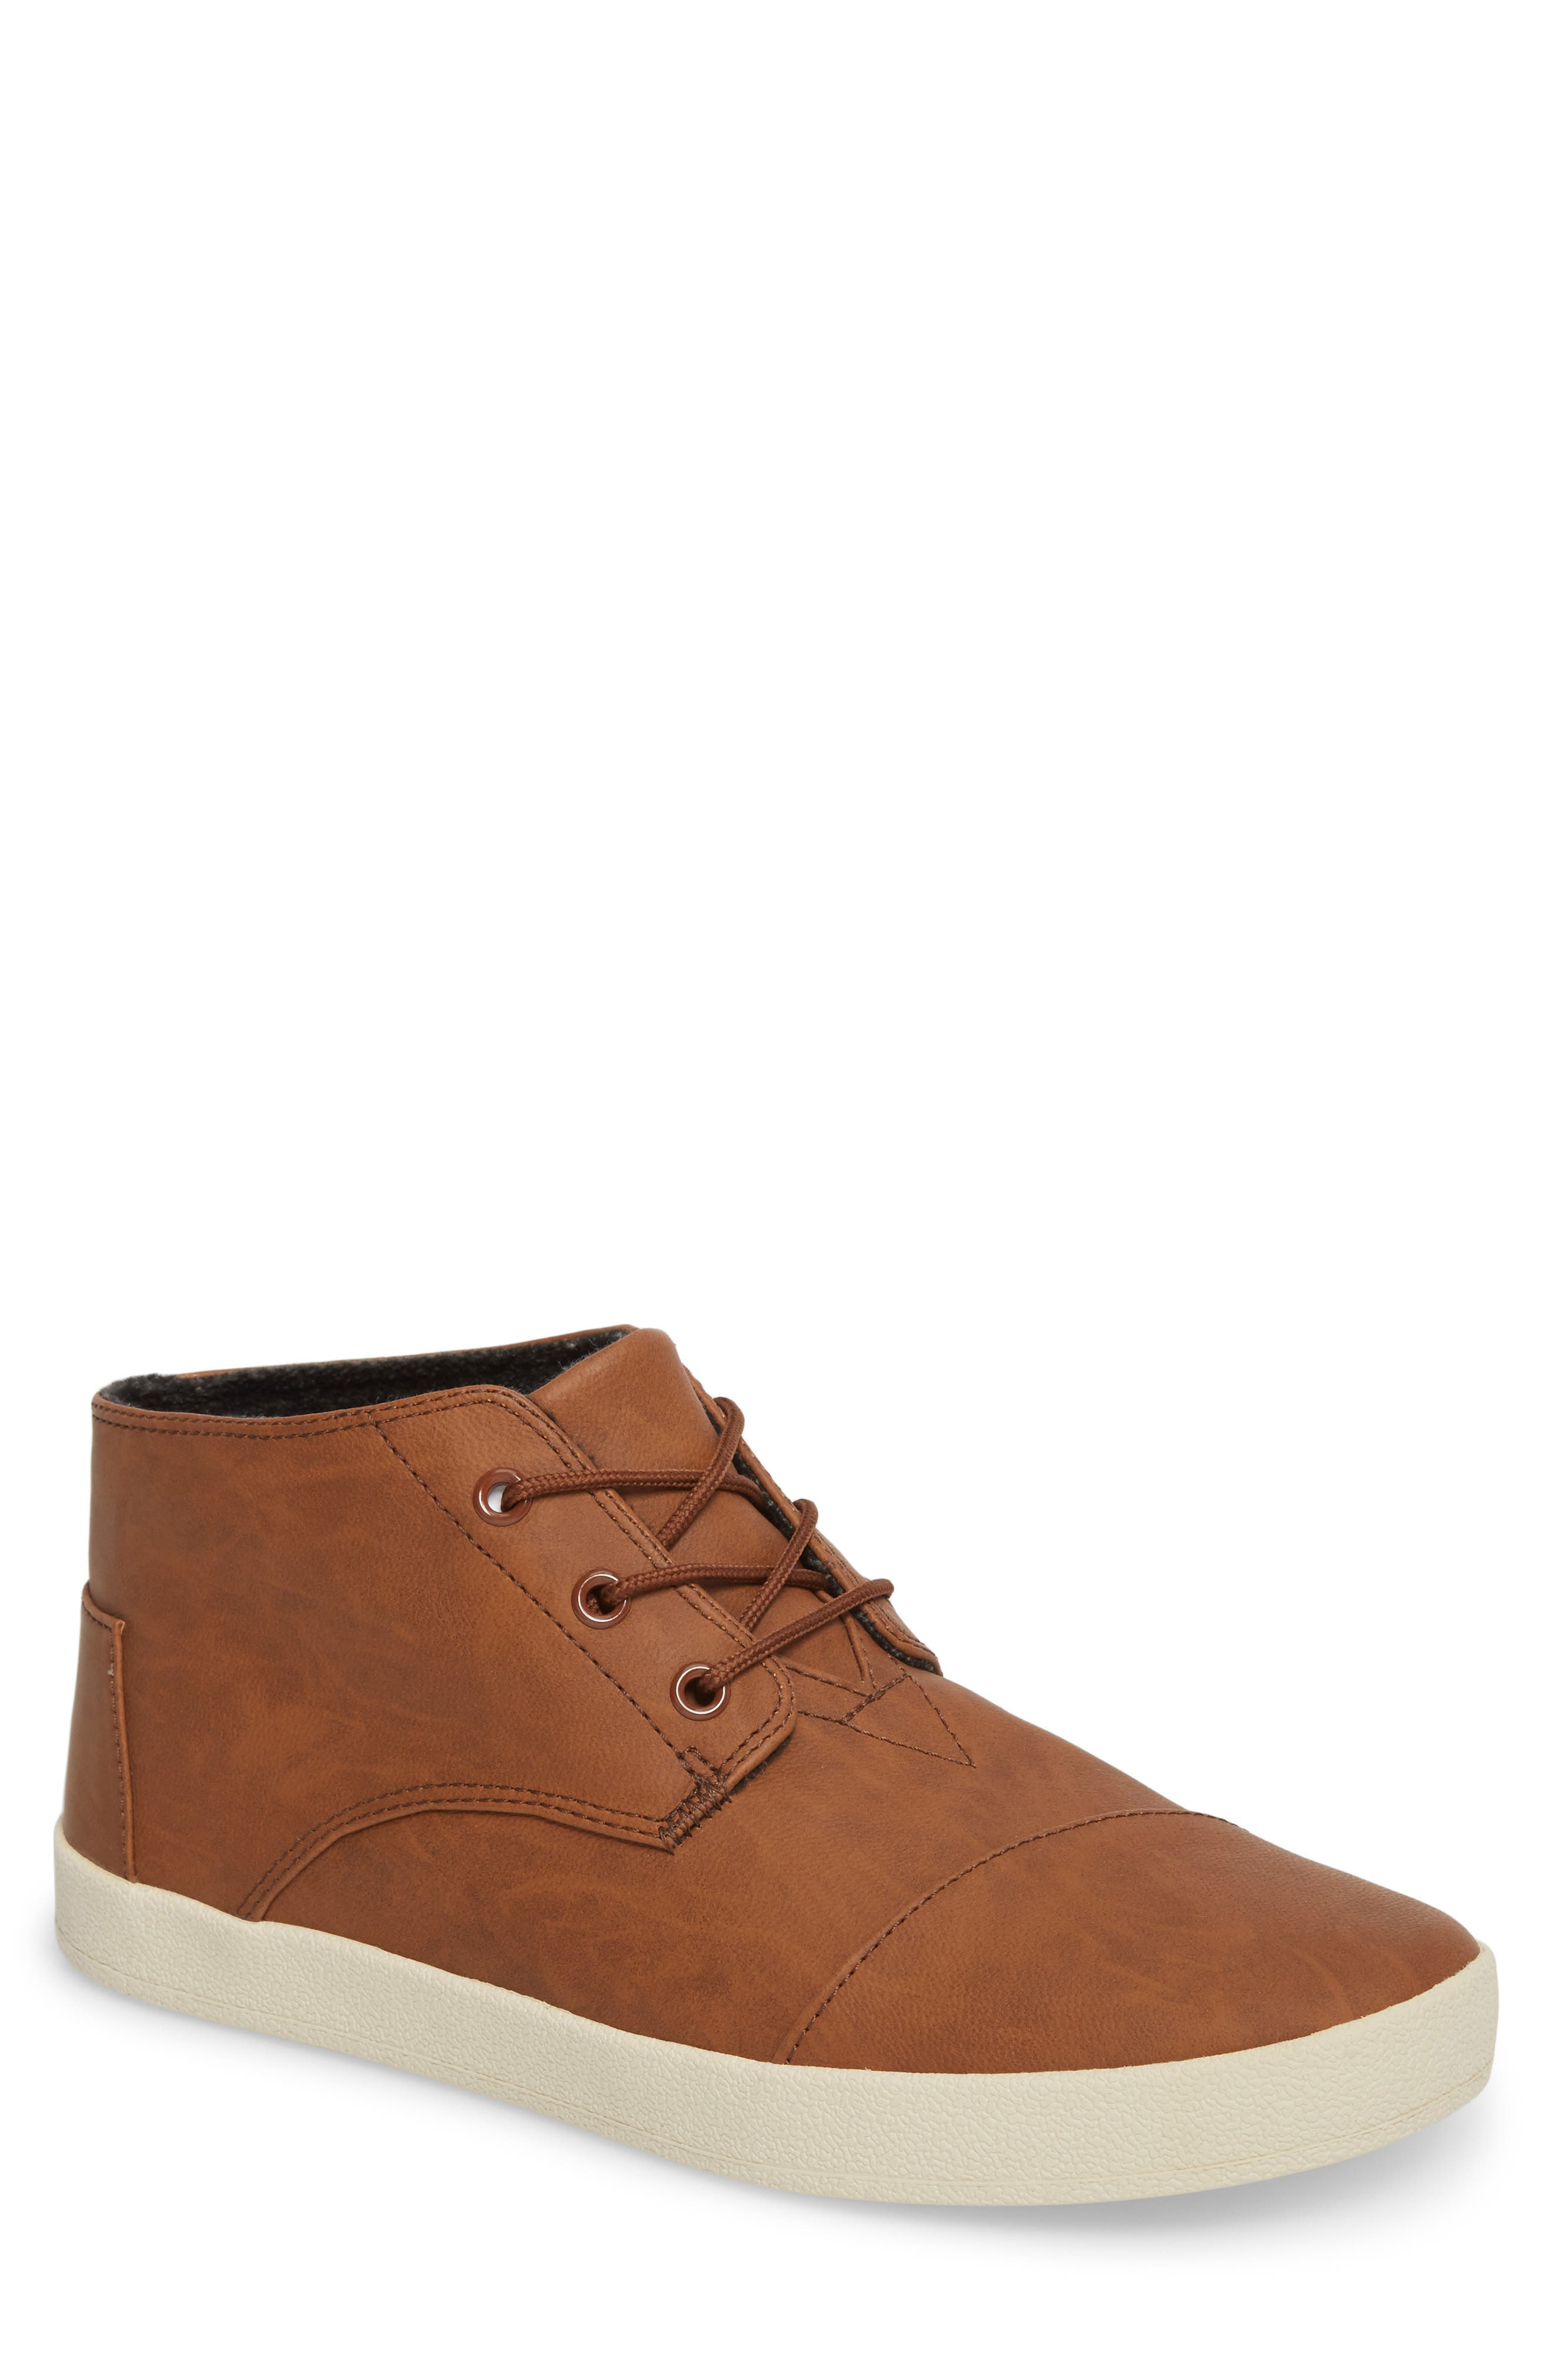 Paseo Mid Sneaker,                         Main,                         color, Dark Earth Brown